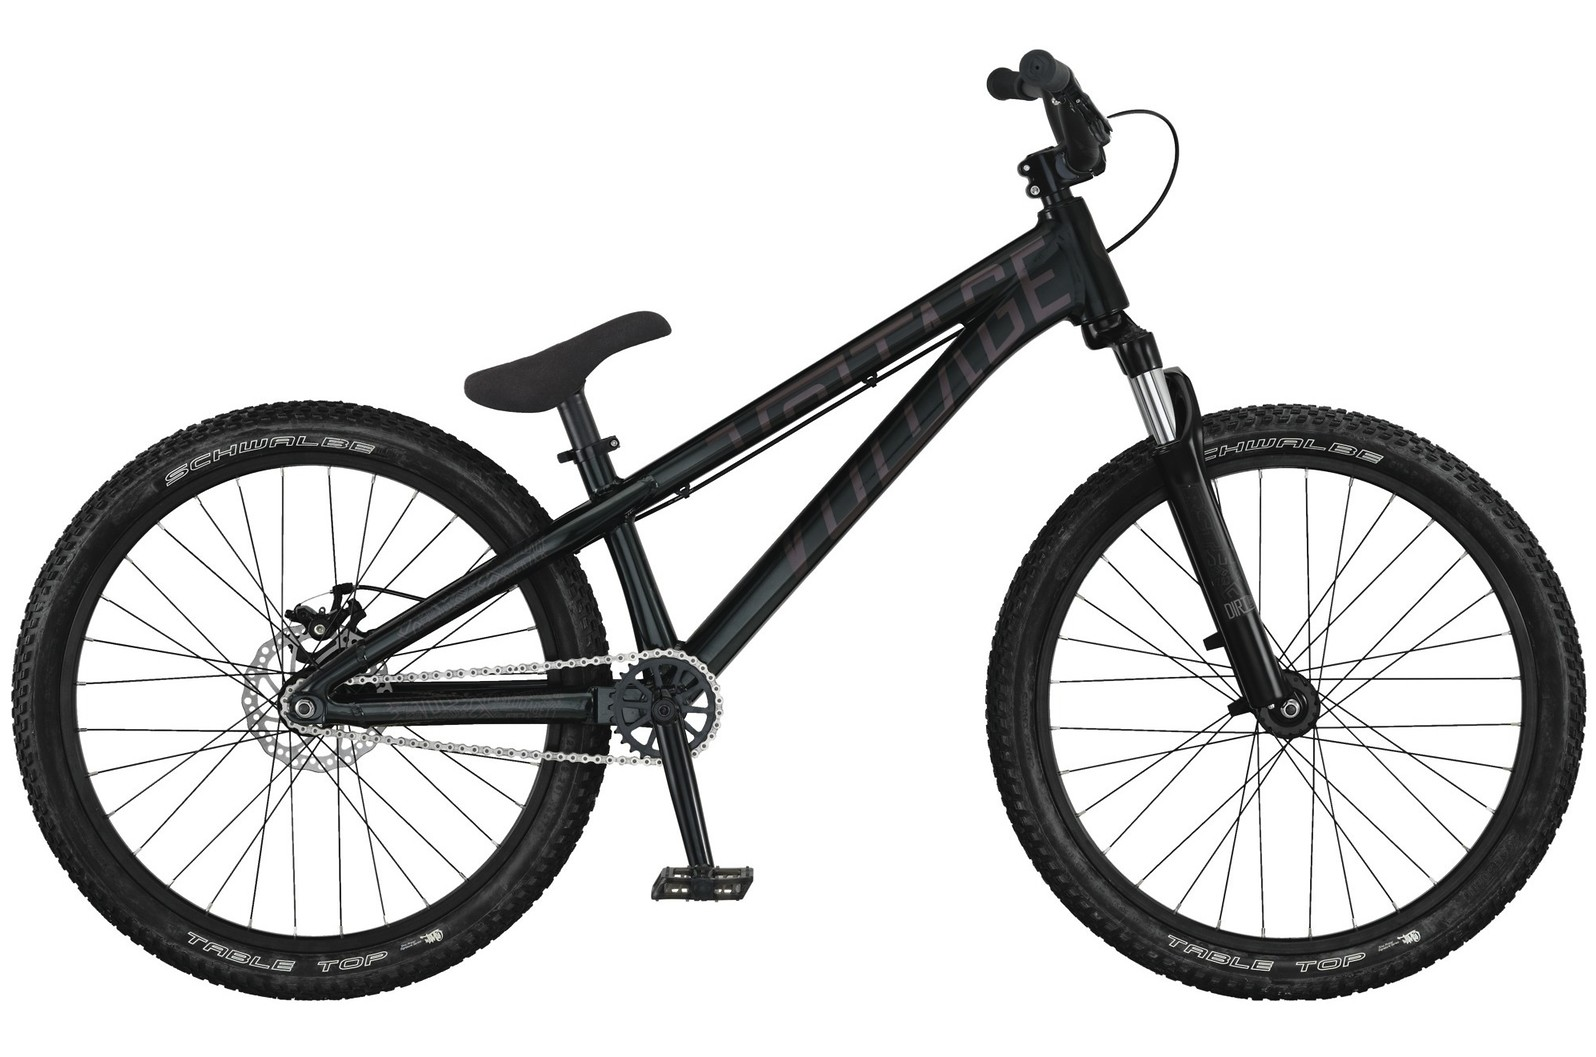 2014 Scott Voltage YZ 0.3 24 Bike SCOTT Voltage YZ 0.3 24 Bike